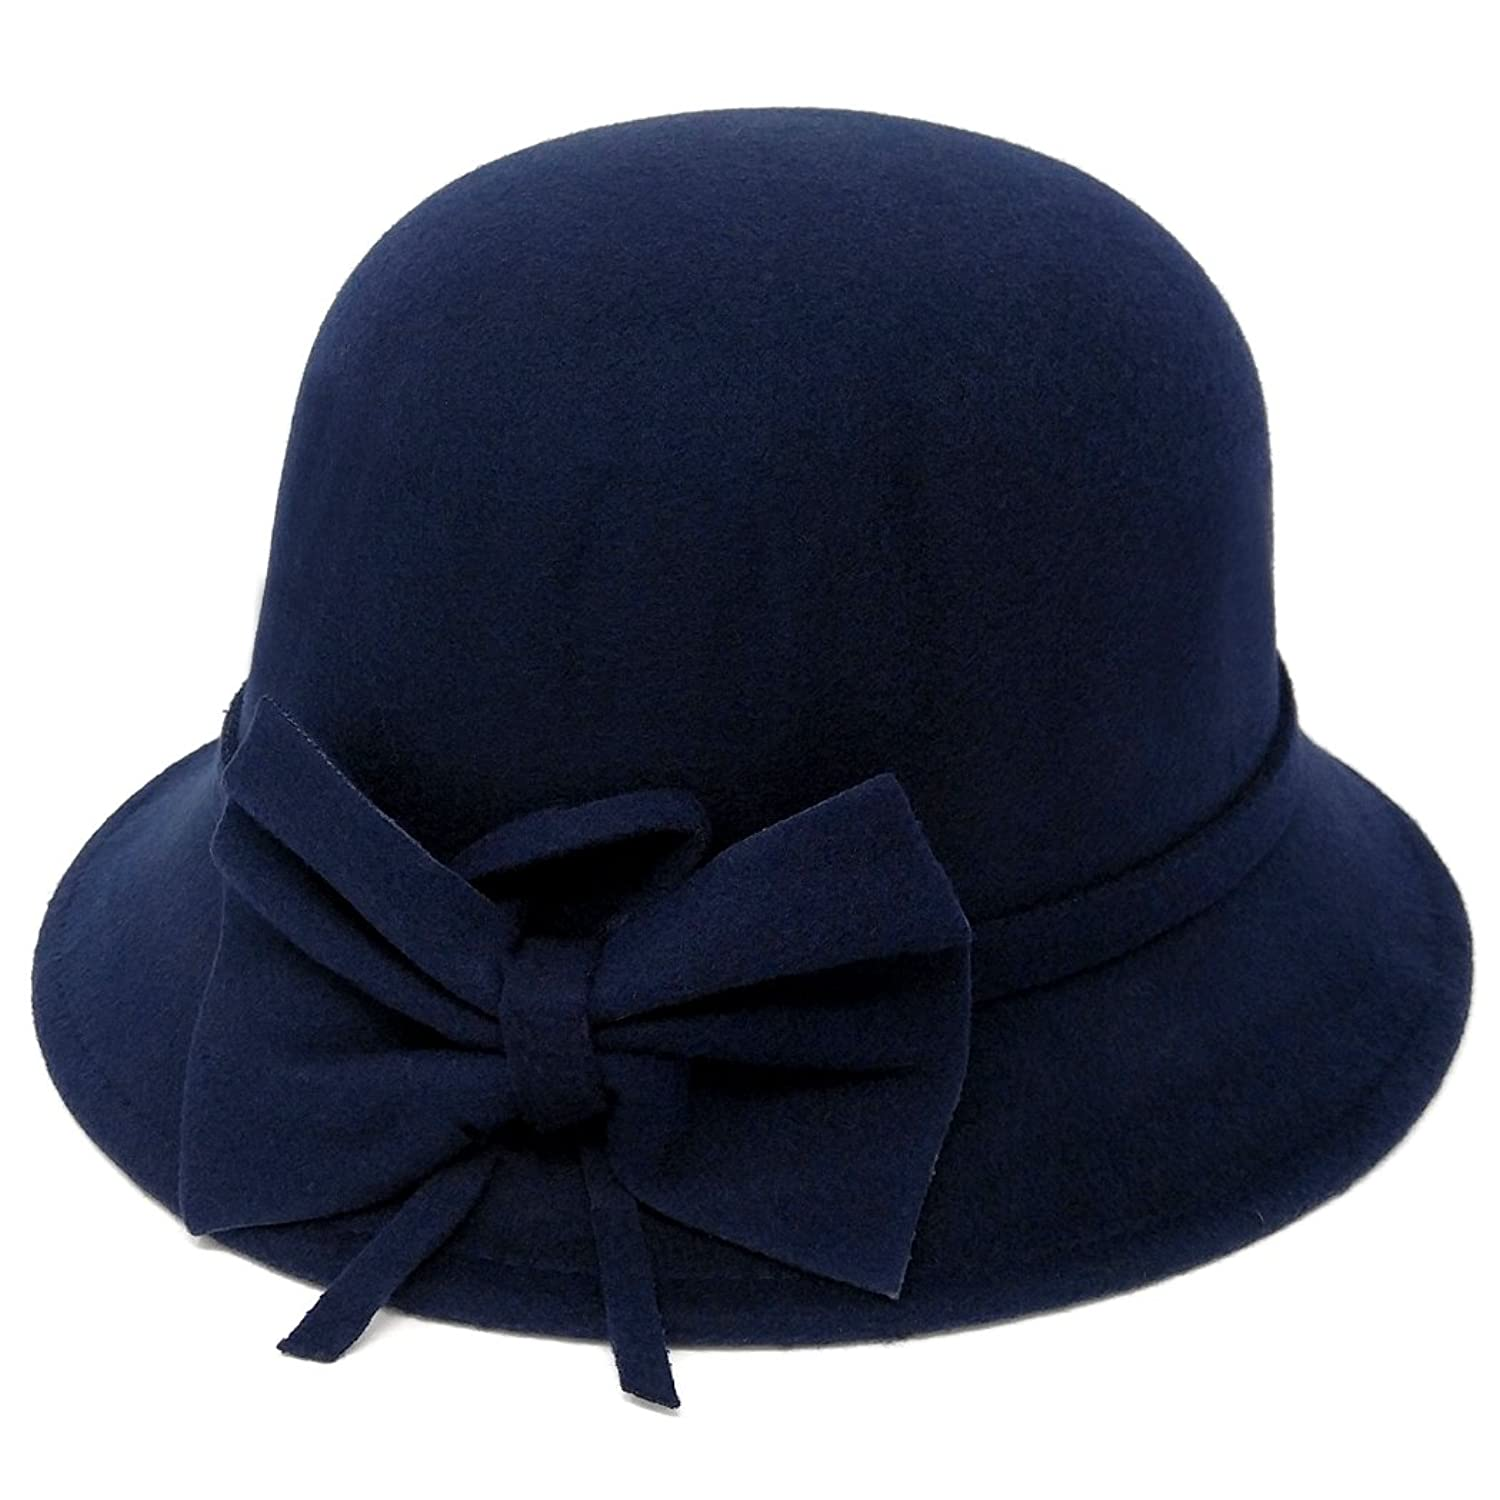 Edwardian Hats, Titanic Hats, Tea Party Hats Vintage Style Felt Cloche Fedora Hat Matching Hatband with Side Bow Adjustable $24.95 AT vintagedancer.com